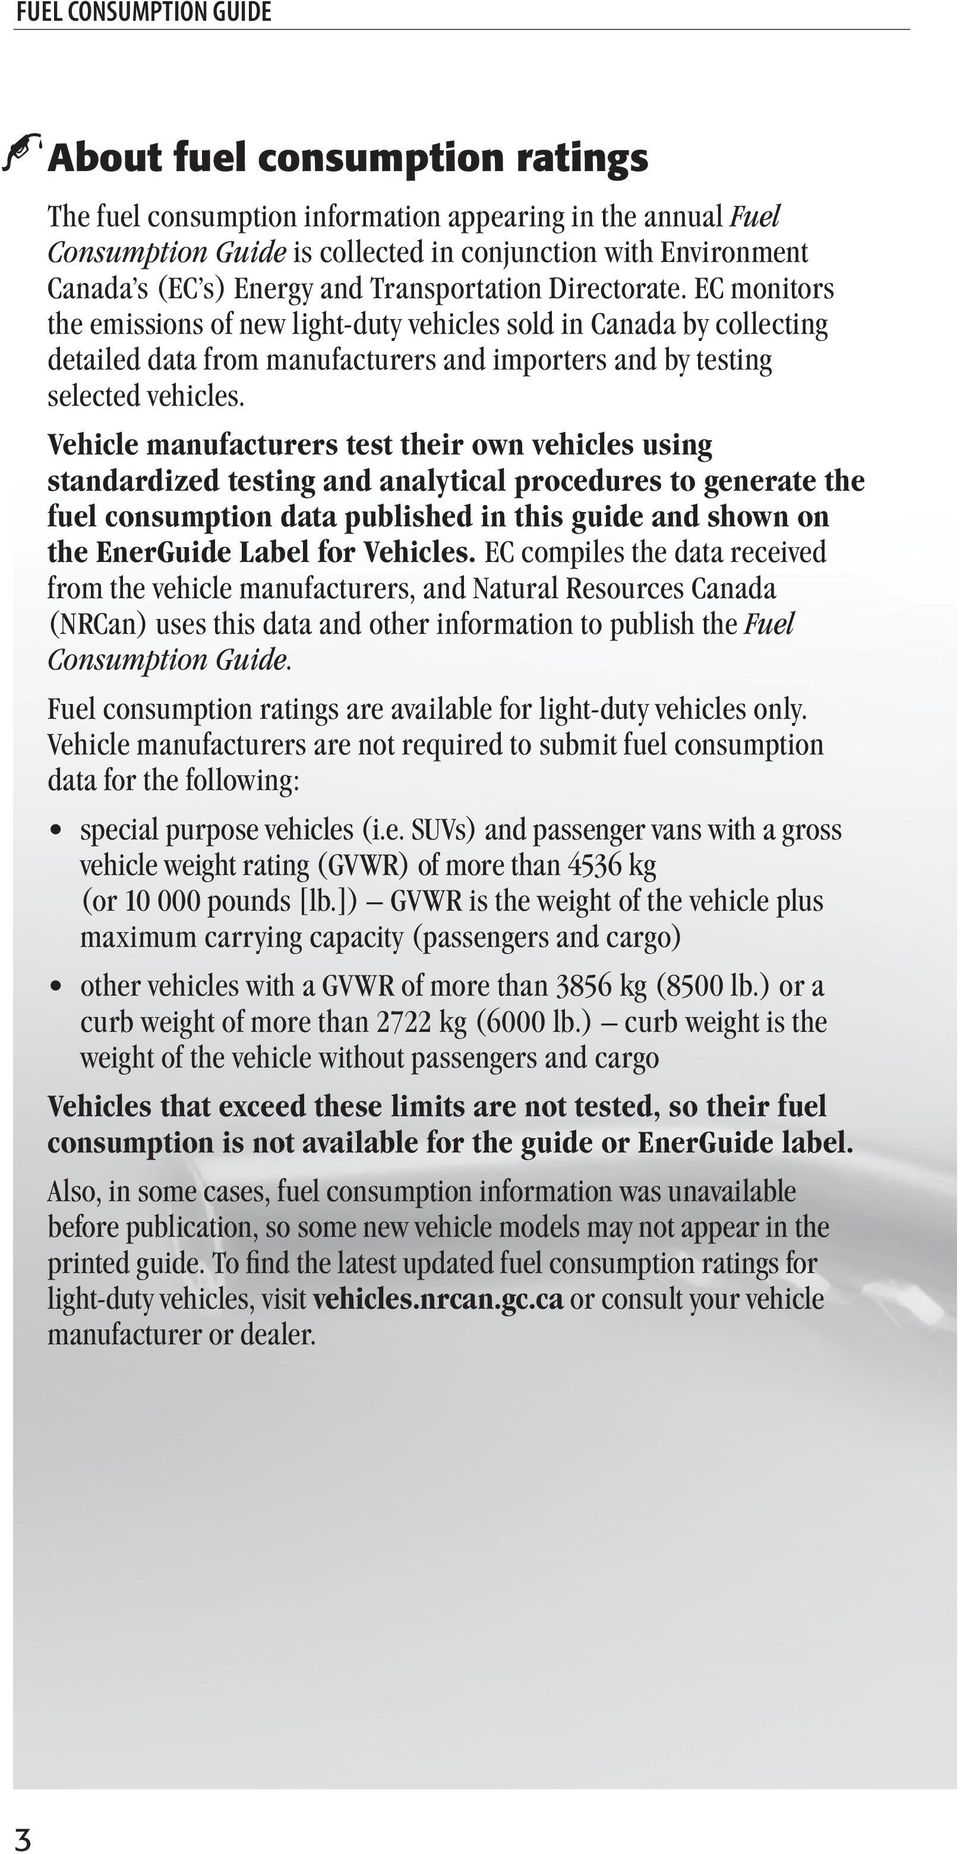 EC Monitors The Emissions Of New Light Duty Vehicles Sold In Canada By Collecting Detailed